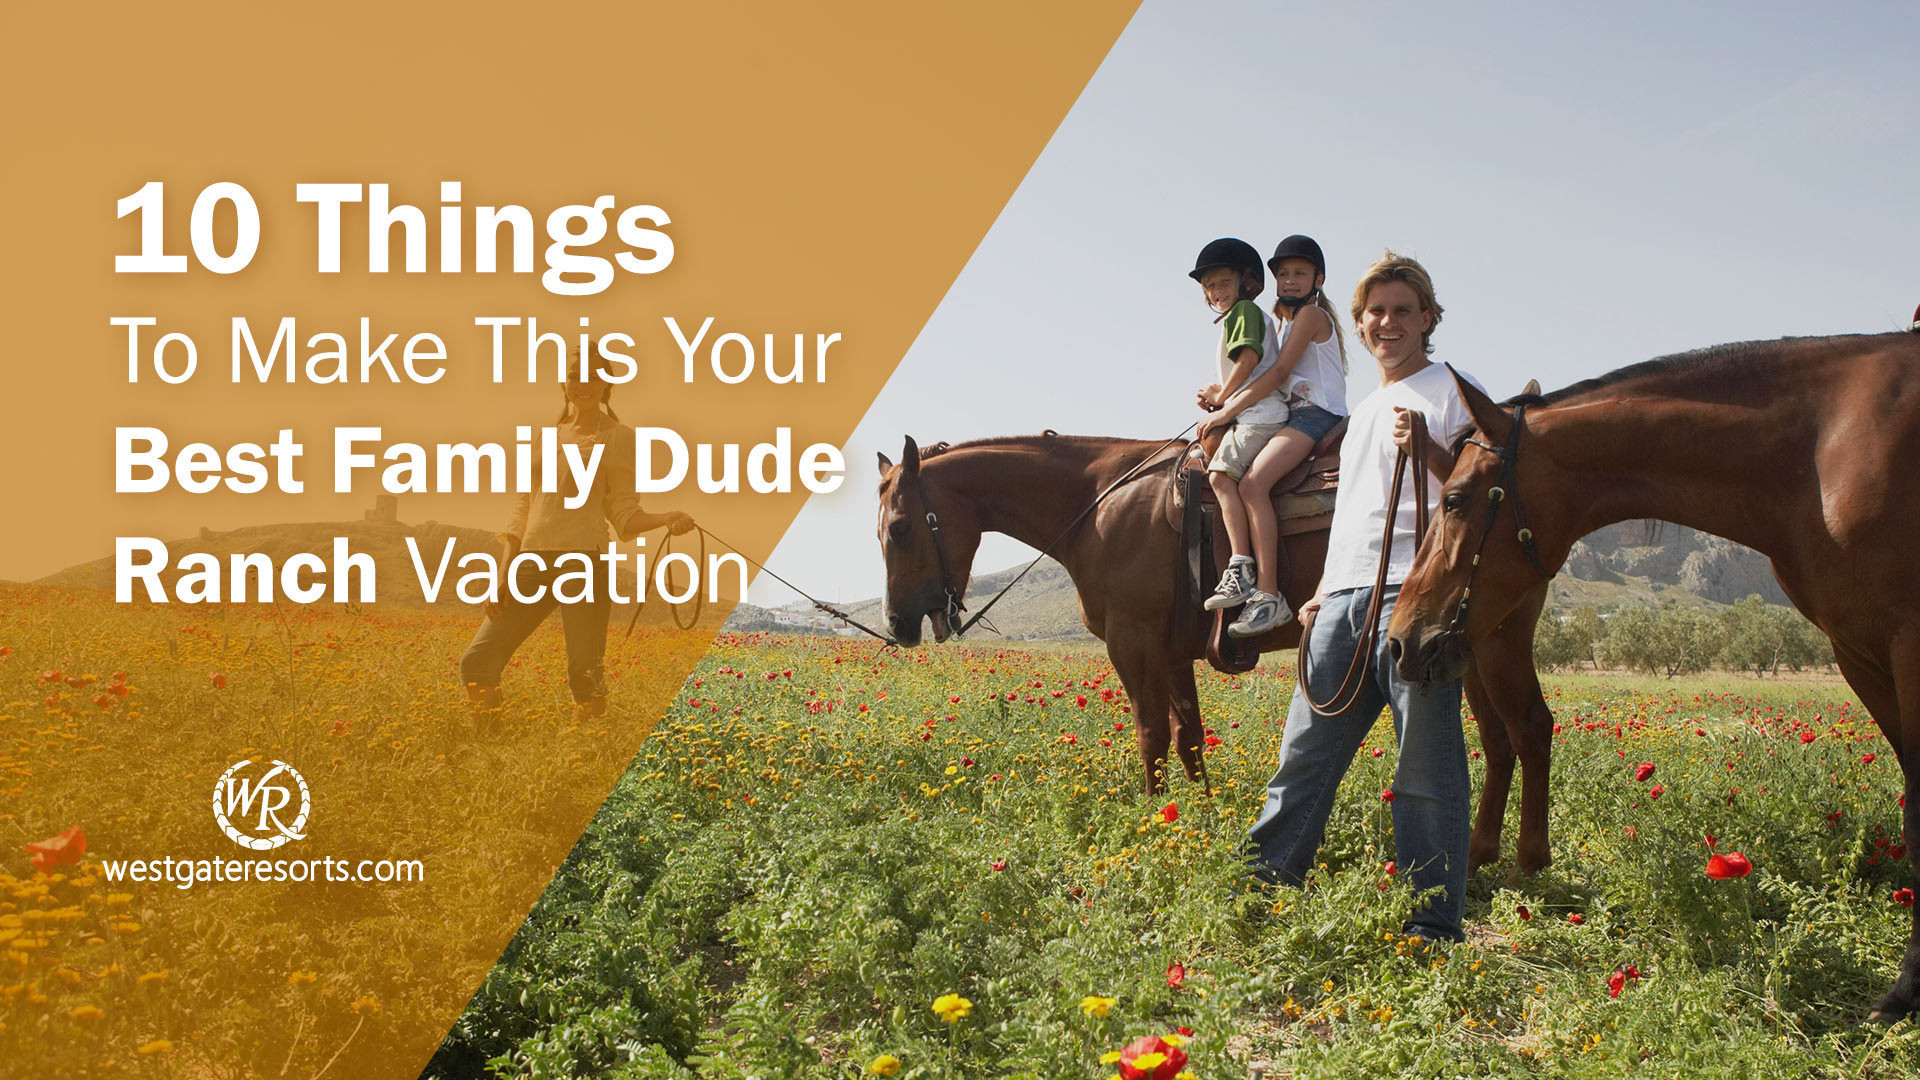 10 Things To Do On Your Family Dude Ranch Vacation | Westgate River Ranch Resort & Rodeo | Best Family Dude Ranch Vacations